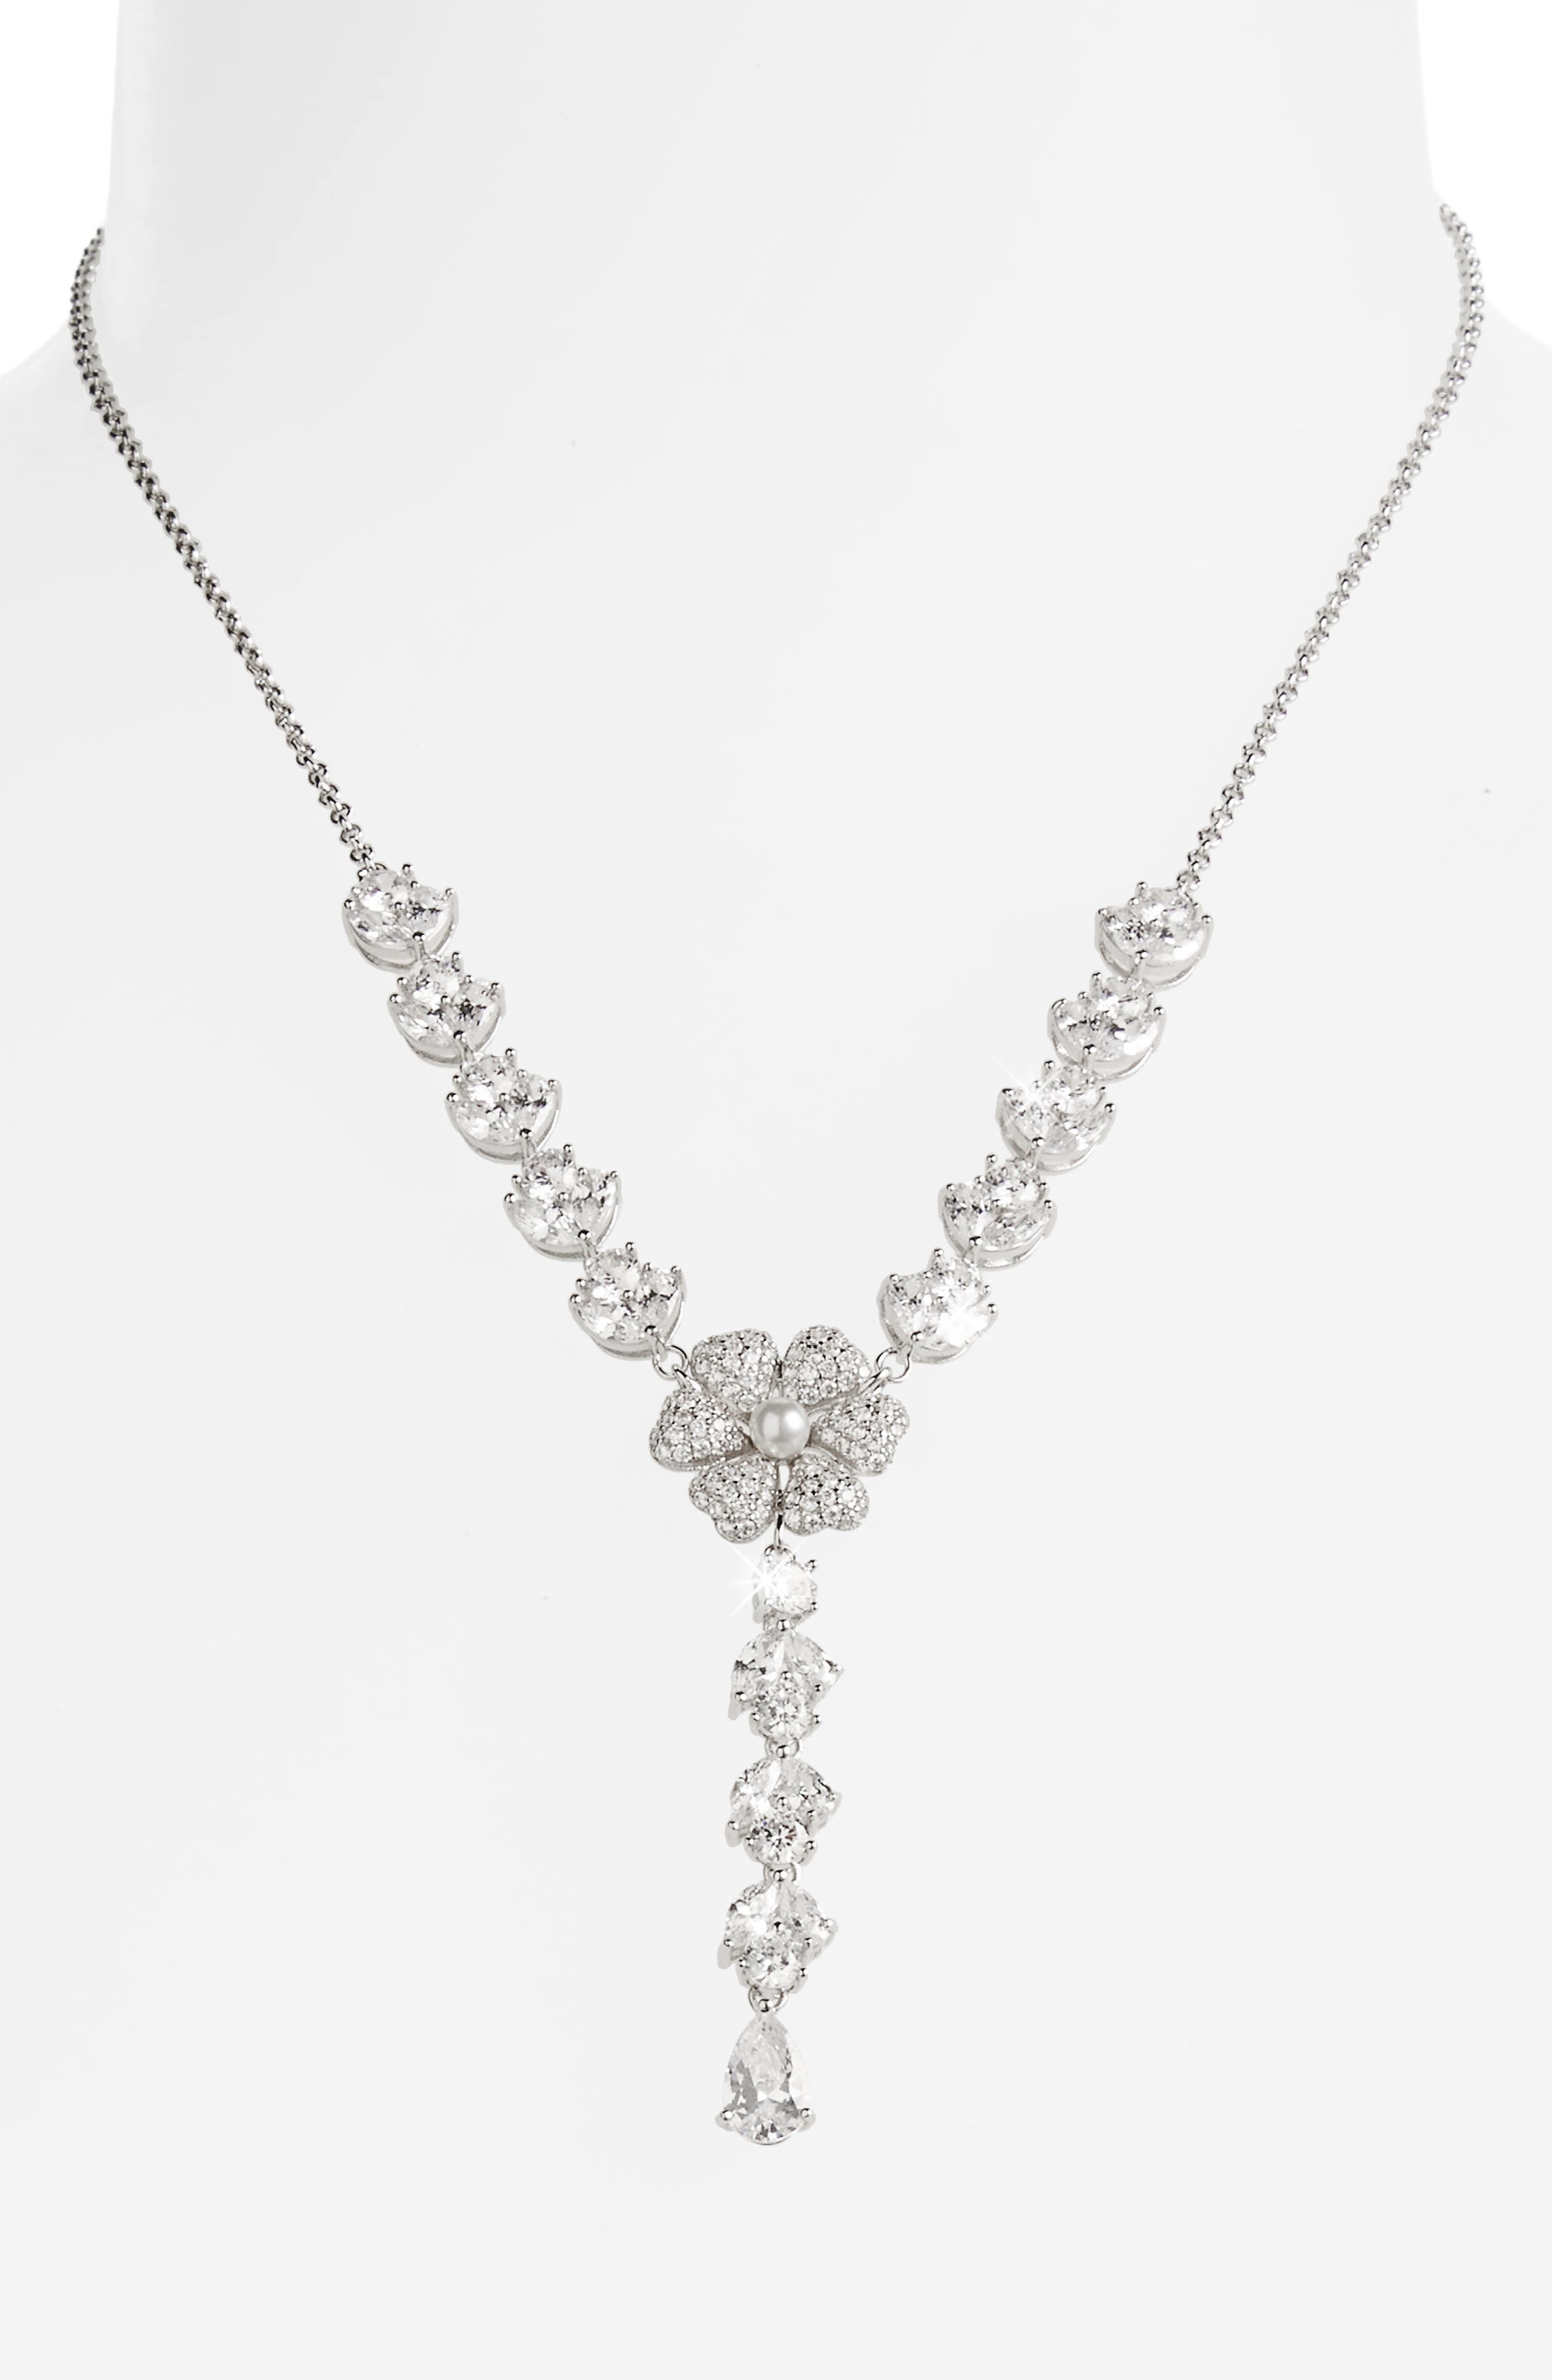 Swarovski Crystal & Imitation Pearl Flower Y-Necklace,                             Alternate thumbnail 2, color,                             Ivory Pearl / Silver